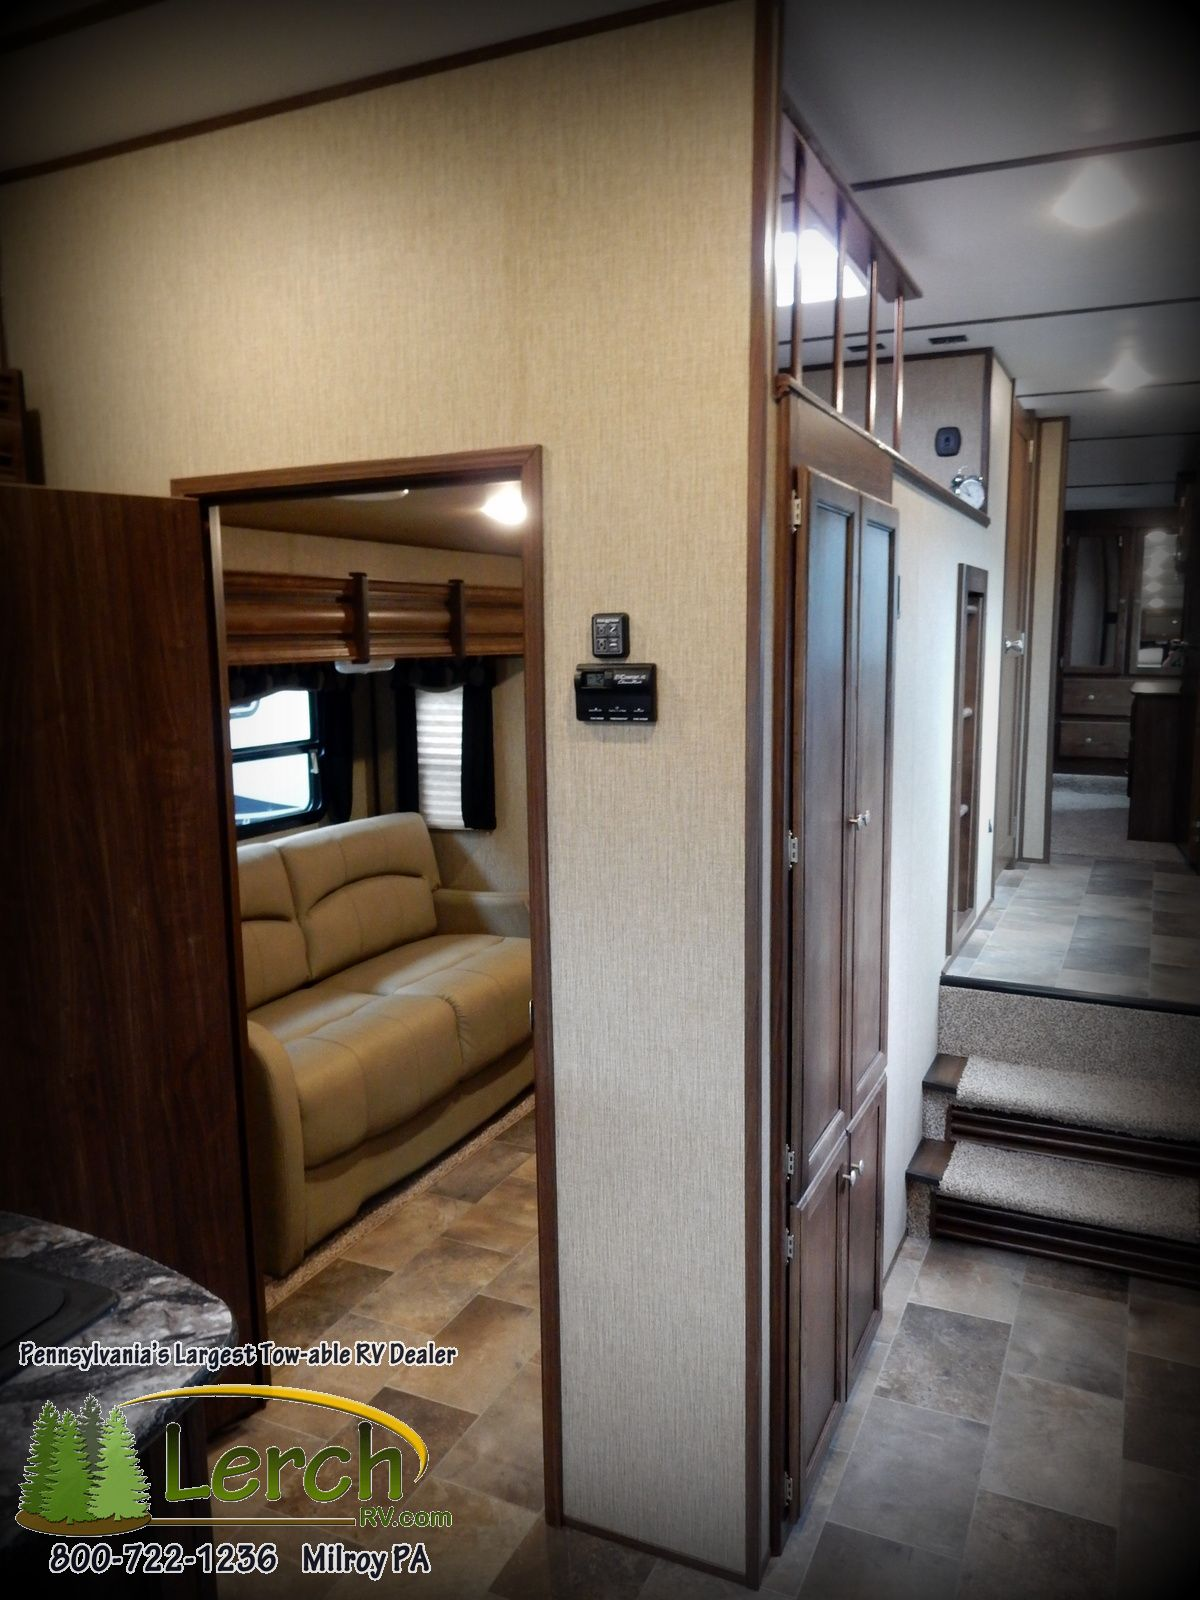 Rving is easy at lerch rv experience the rv lifestyle for Rv with loft